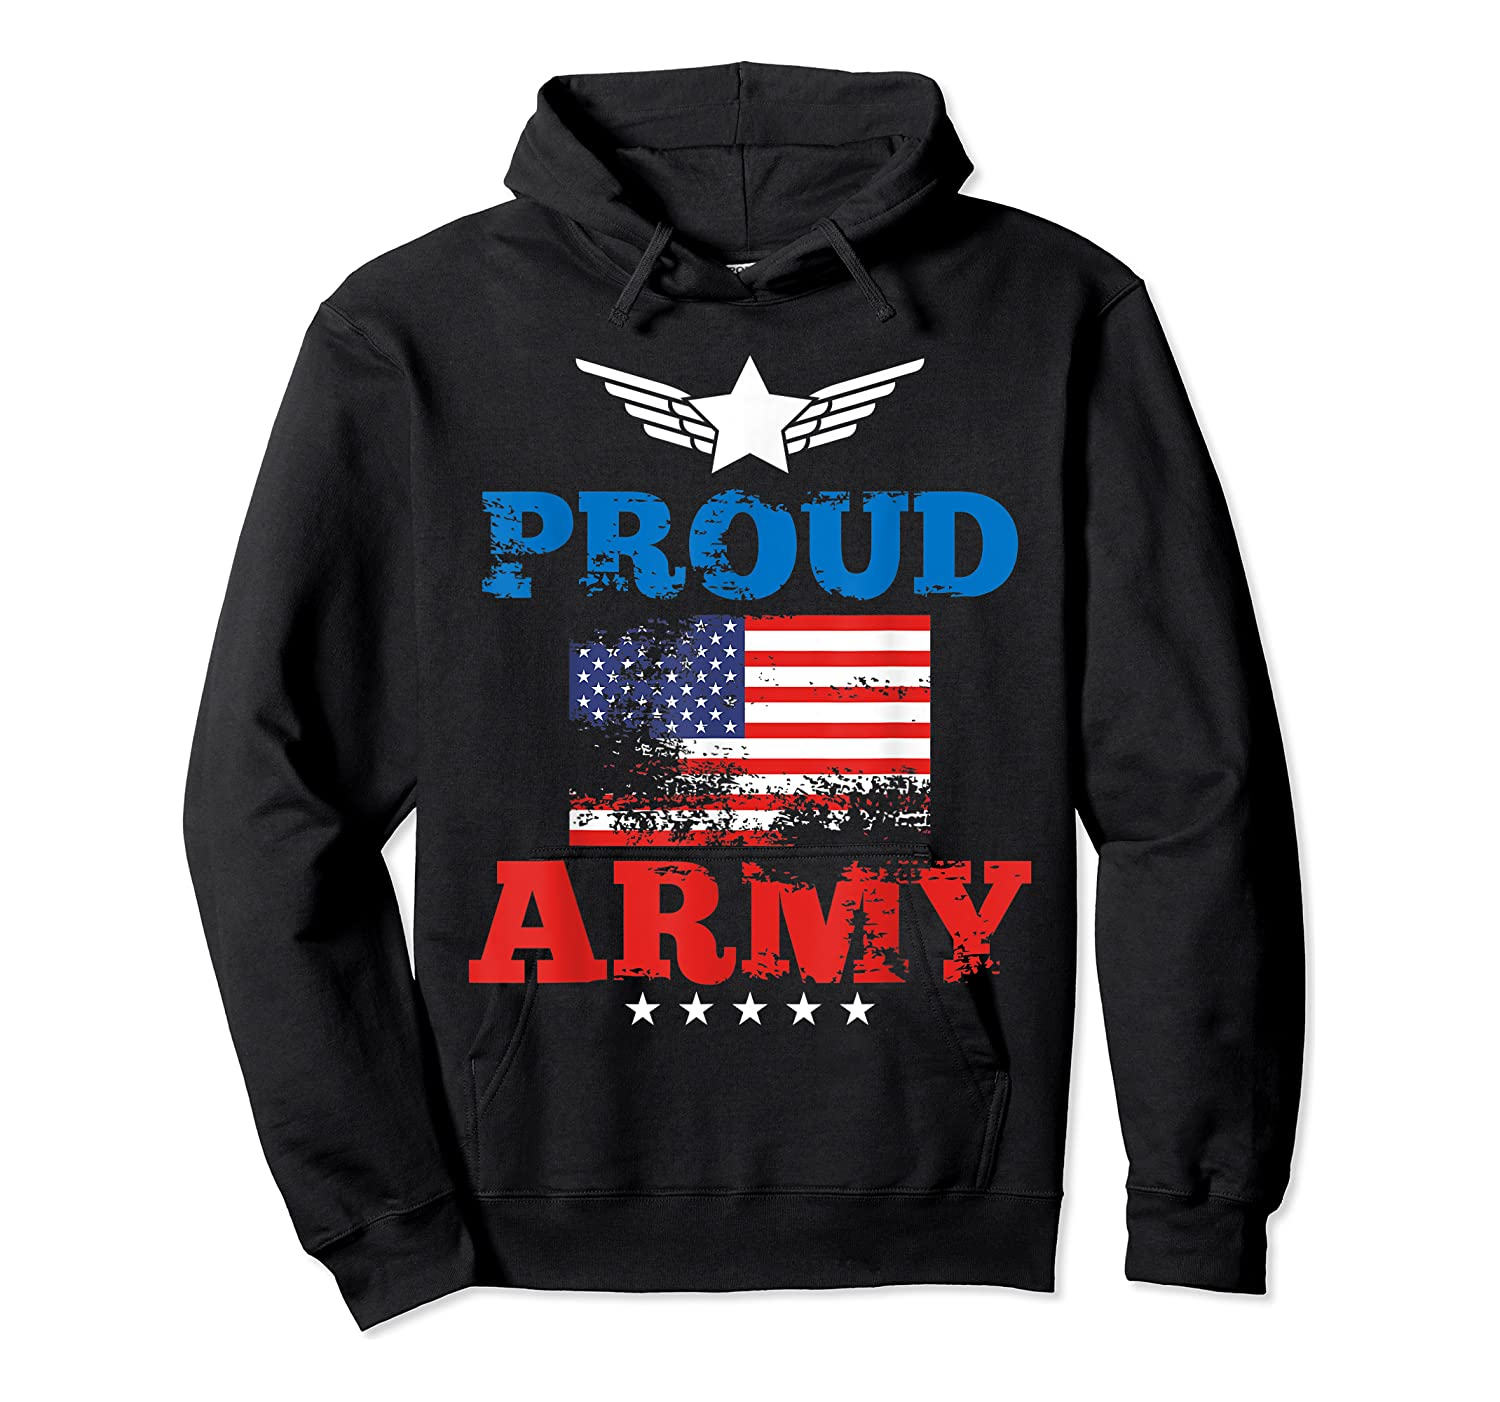 Proud Army American Soldier Air Flag Honor Gift T-shirt Unisex Pullover Hoodie